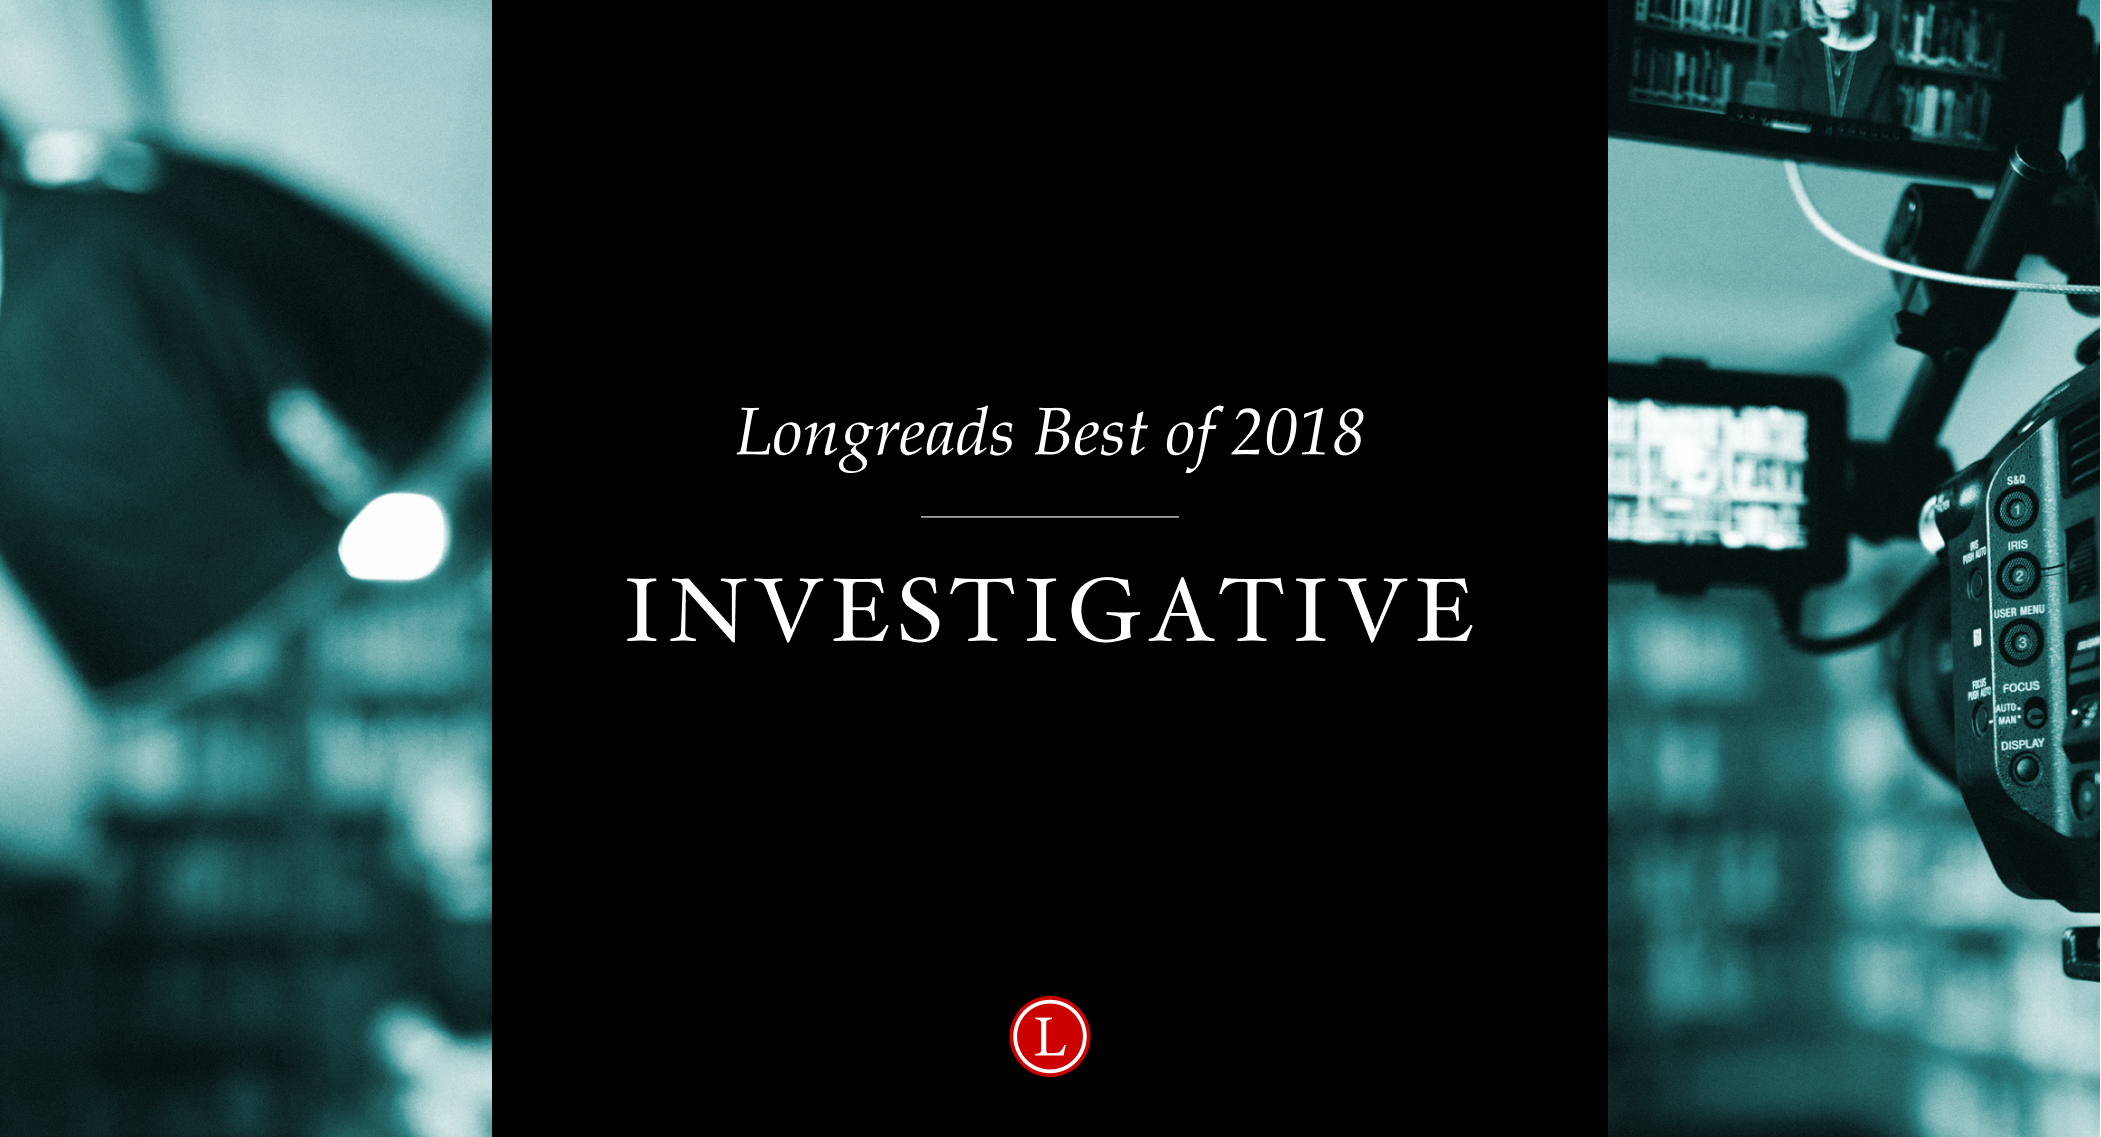 Longreads Best of 2018: Investigative Reporting